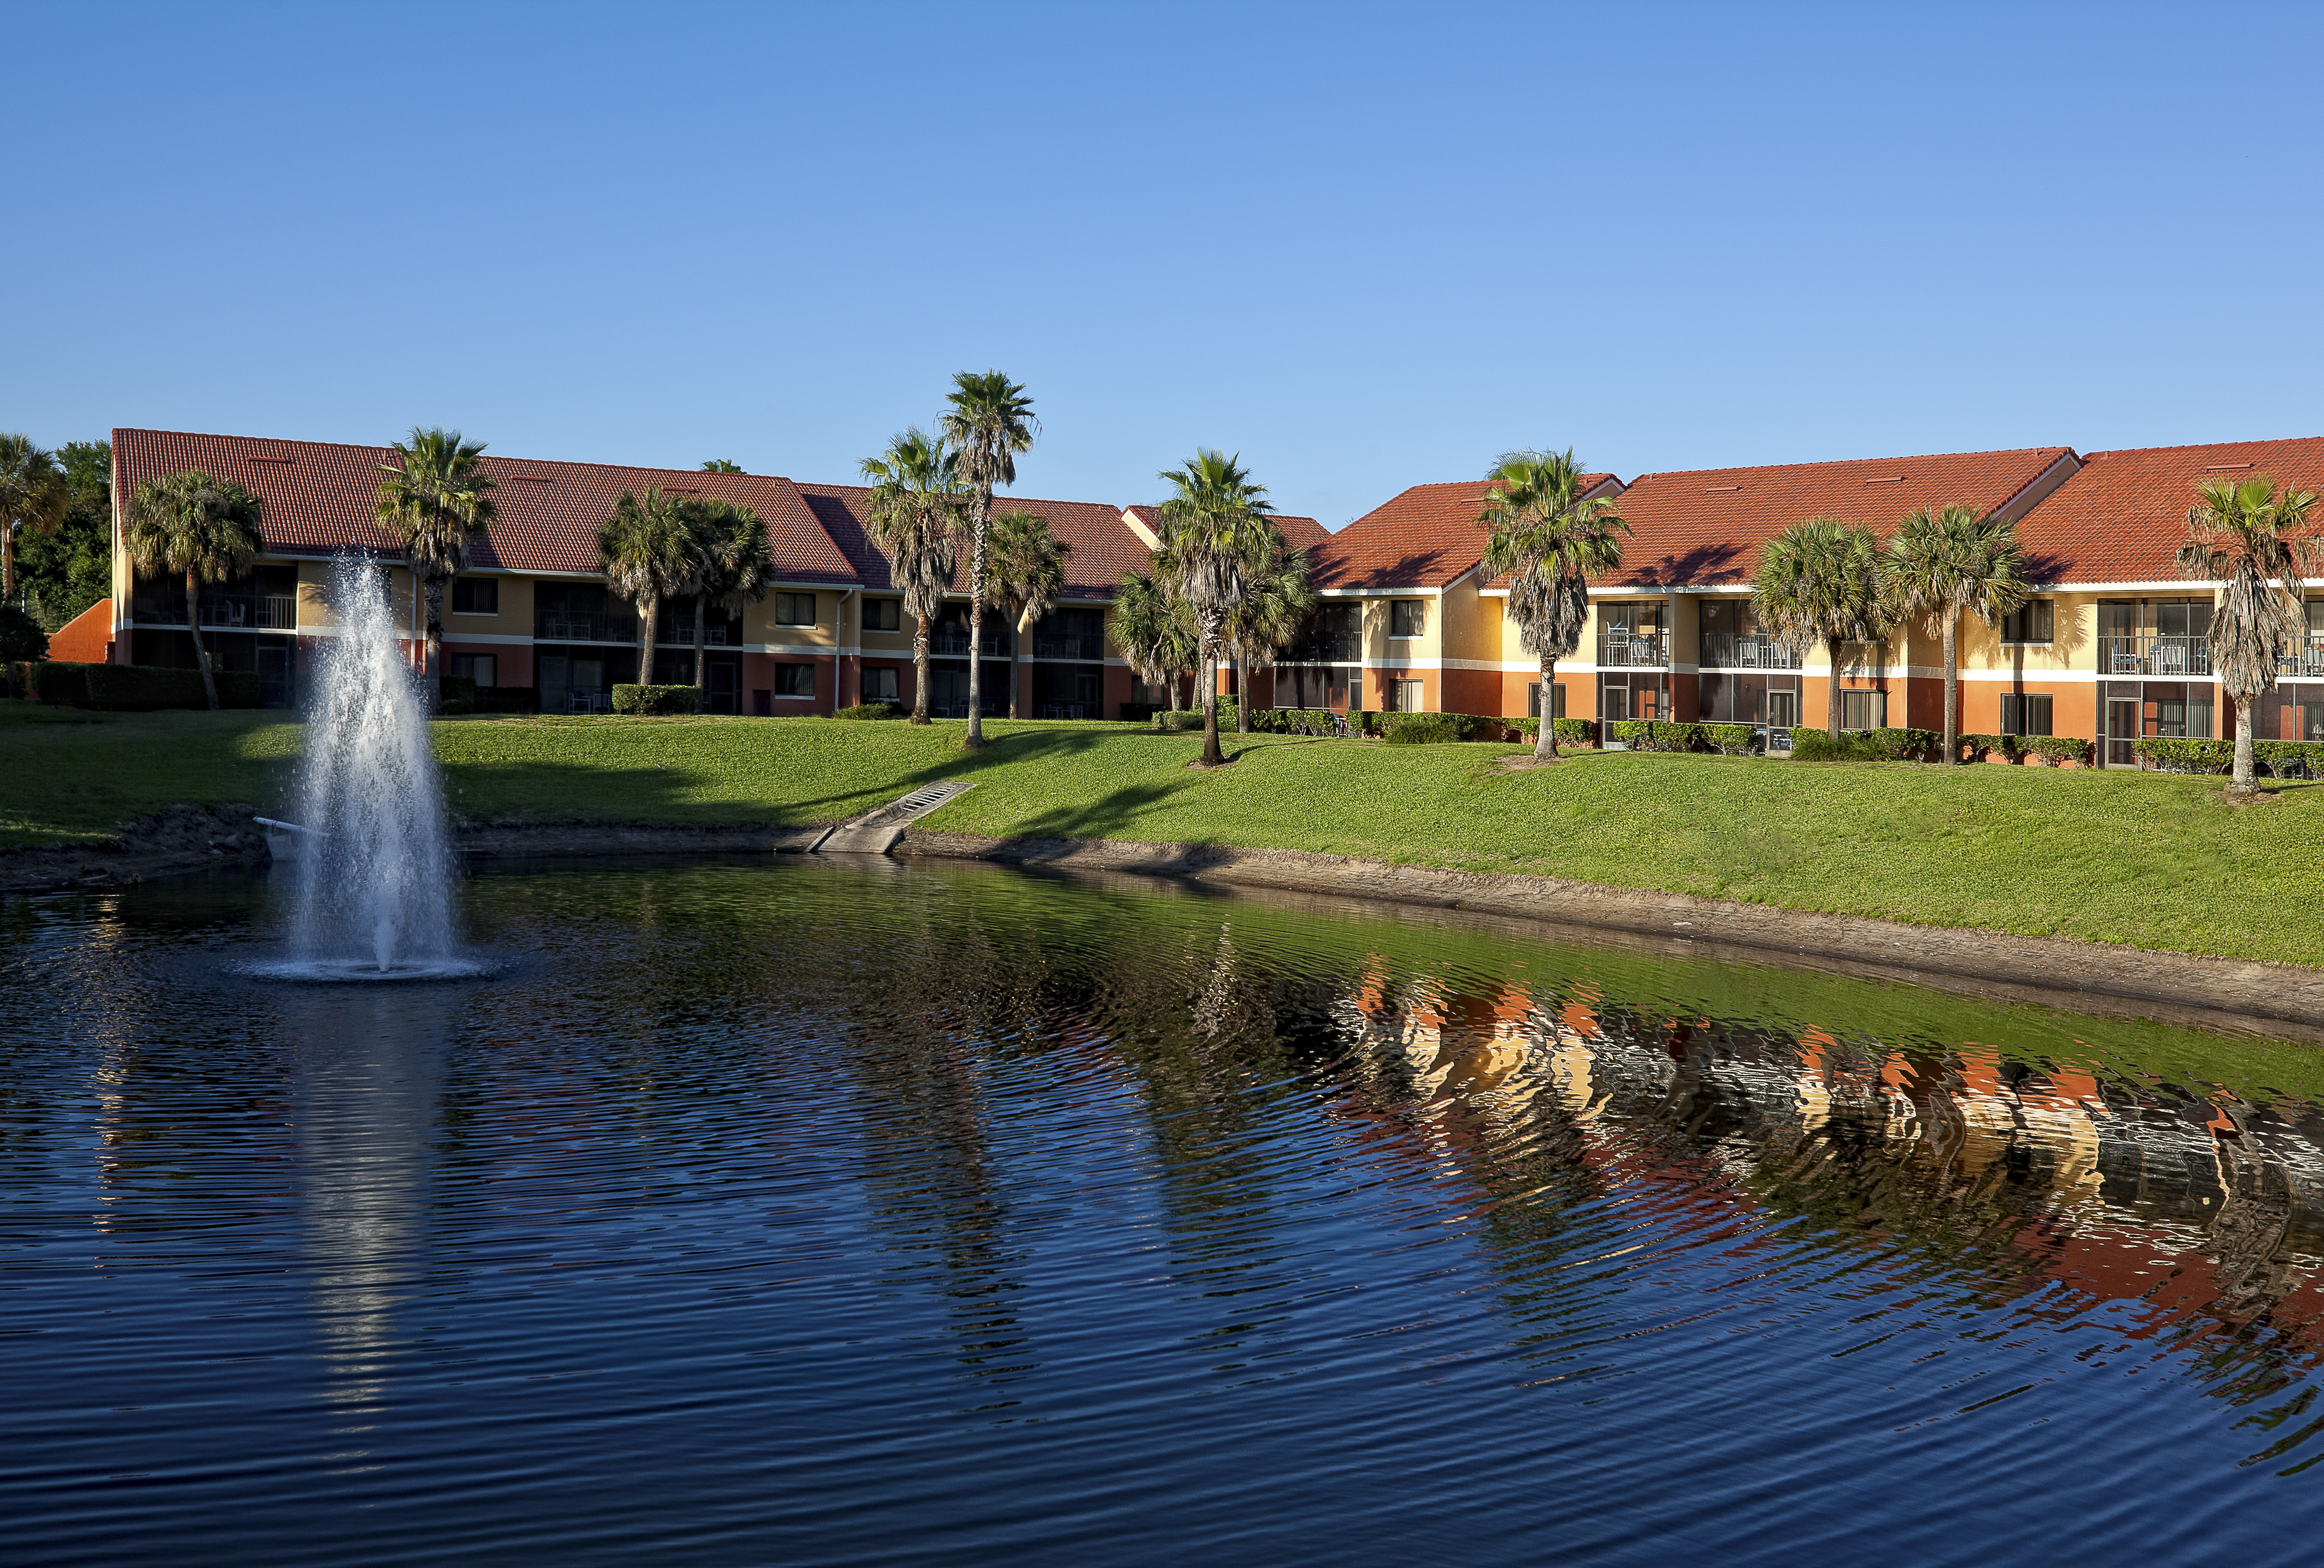 Our resorts in Kissimmee FL - Exterior | Westgate Vacation Villas Resort & Spa | Westgate Resorts